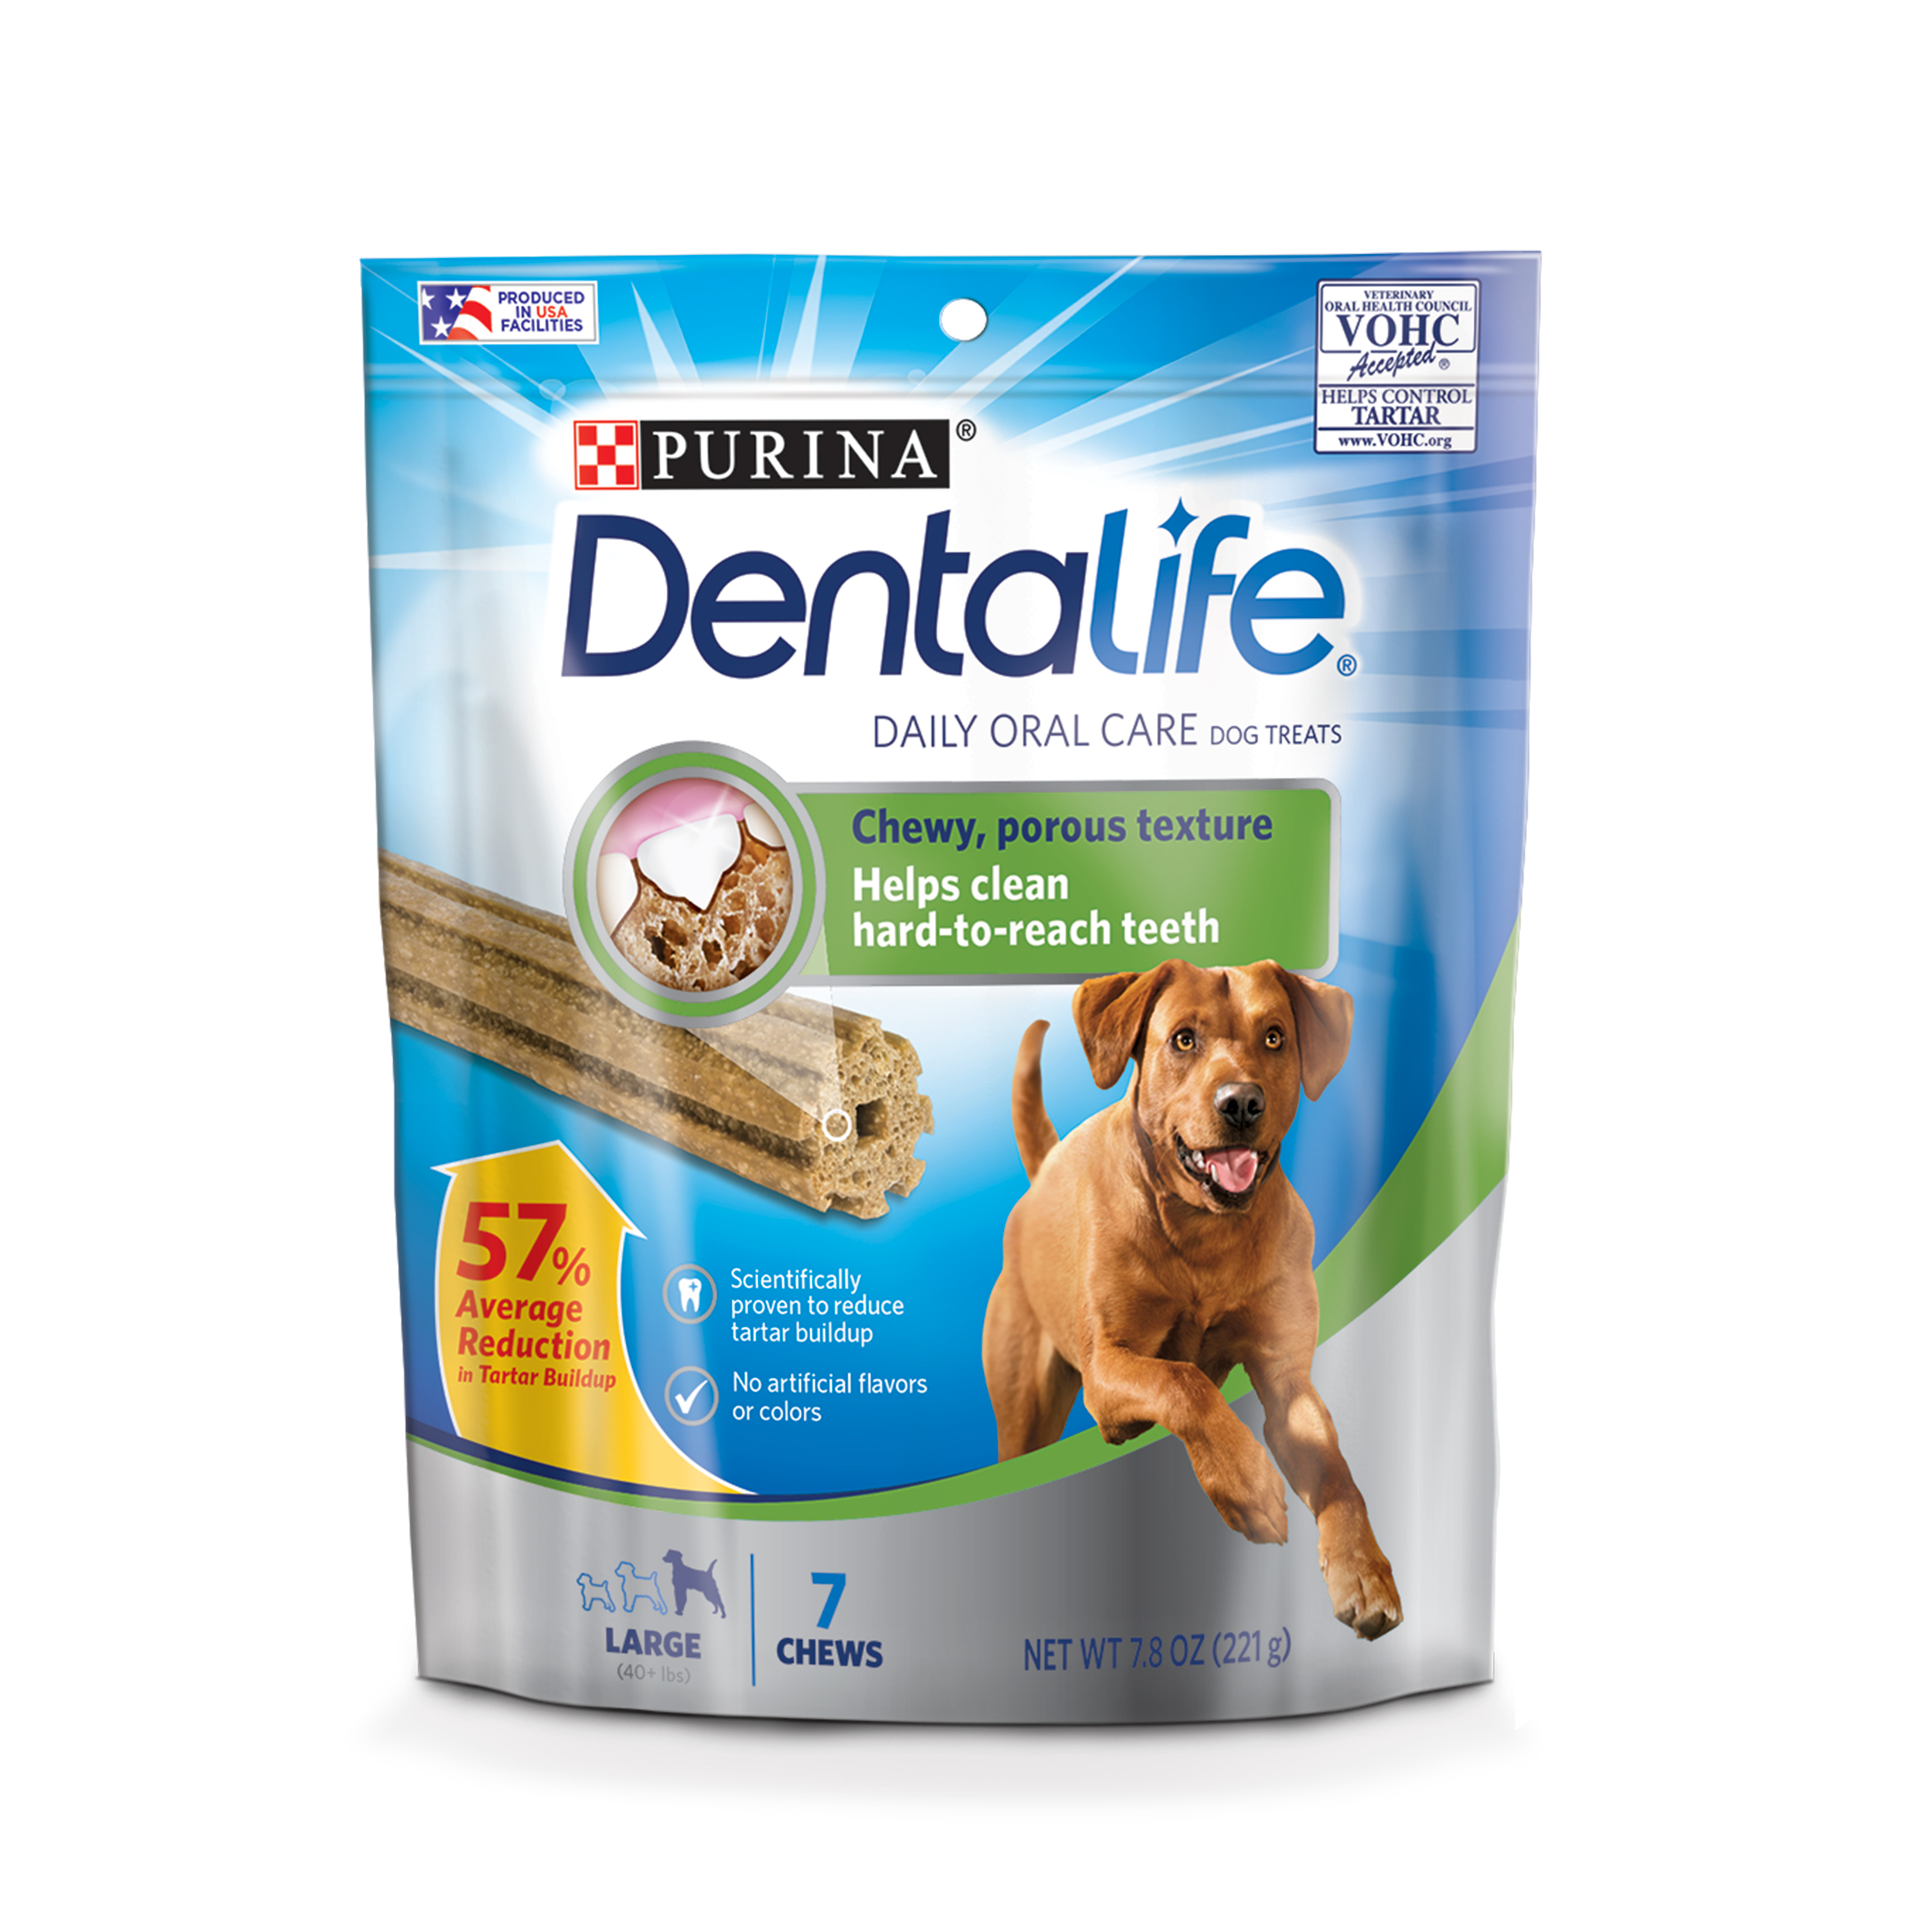 Purina DentaLife Daily Oral Care Large Dog Treats - 7 ct. Pouches